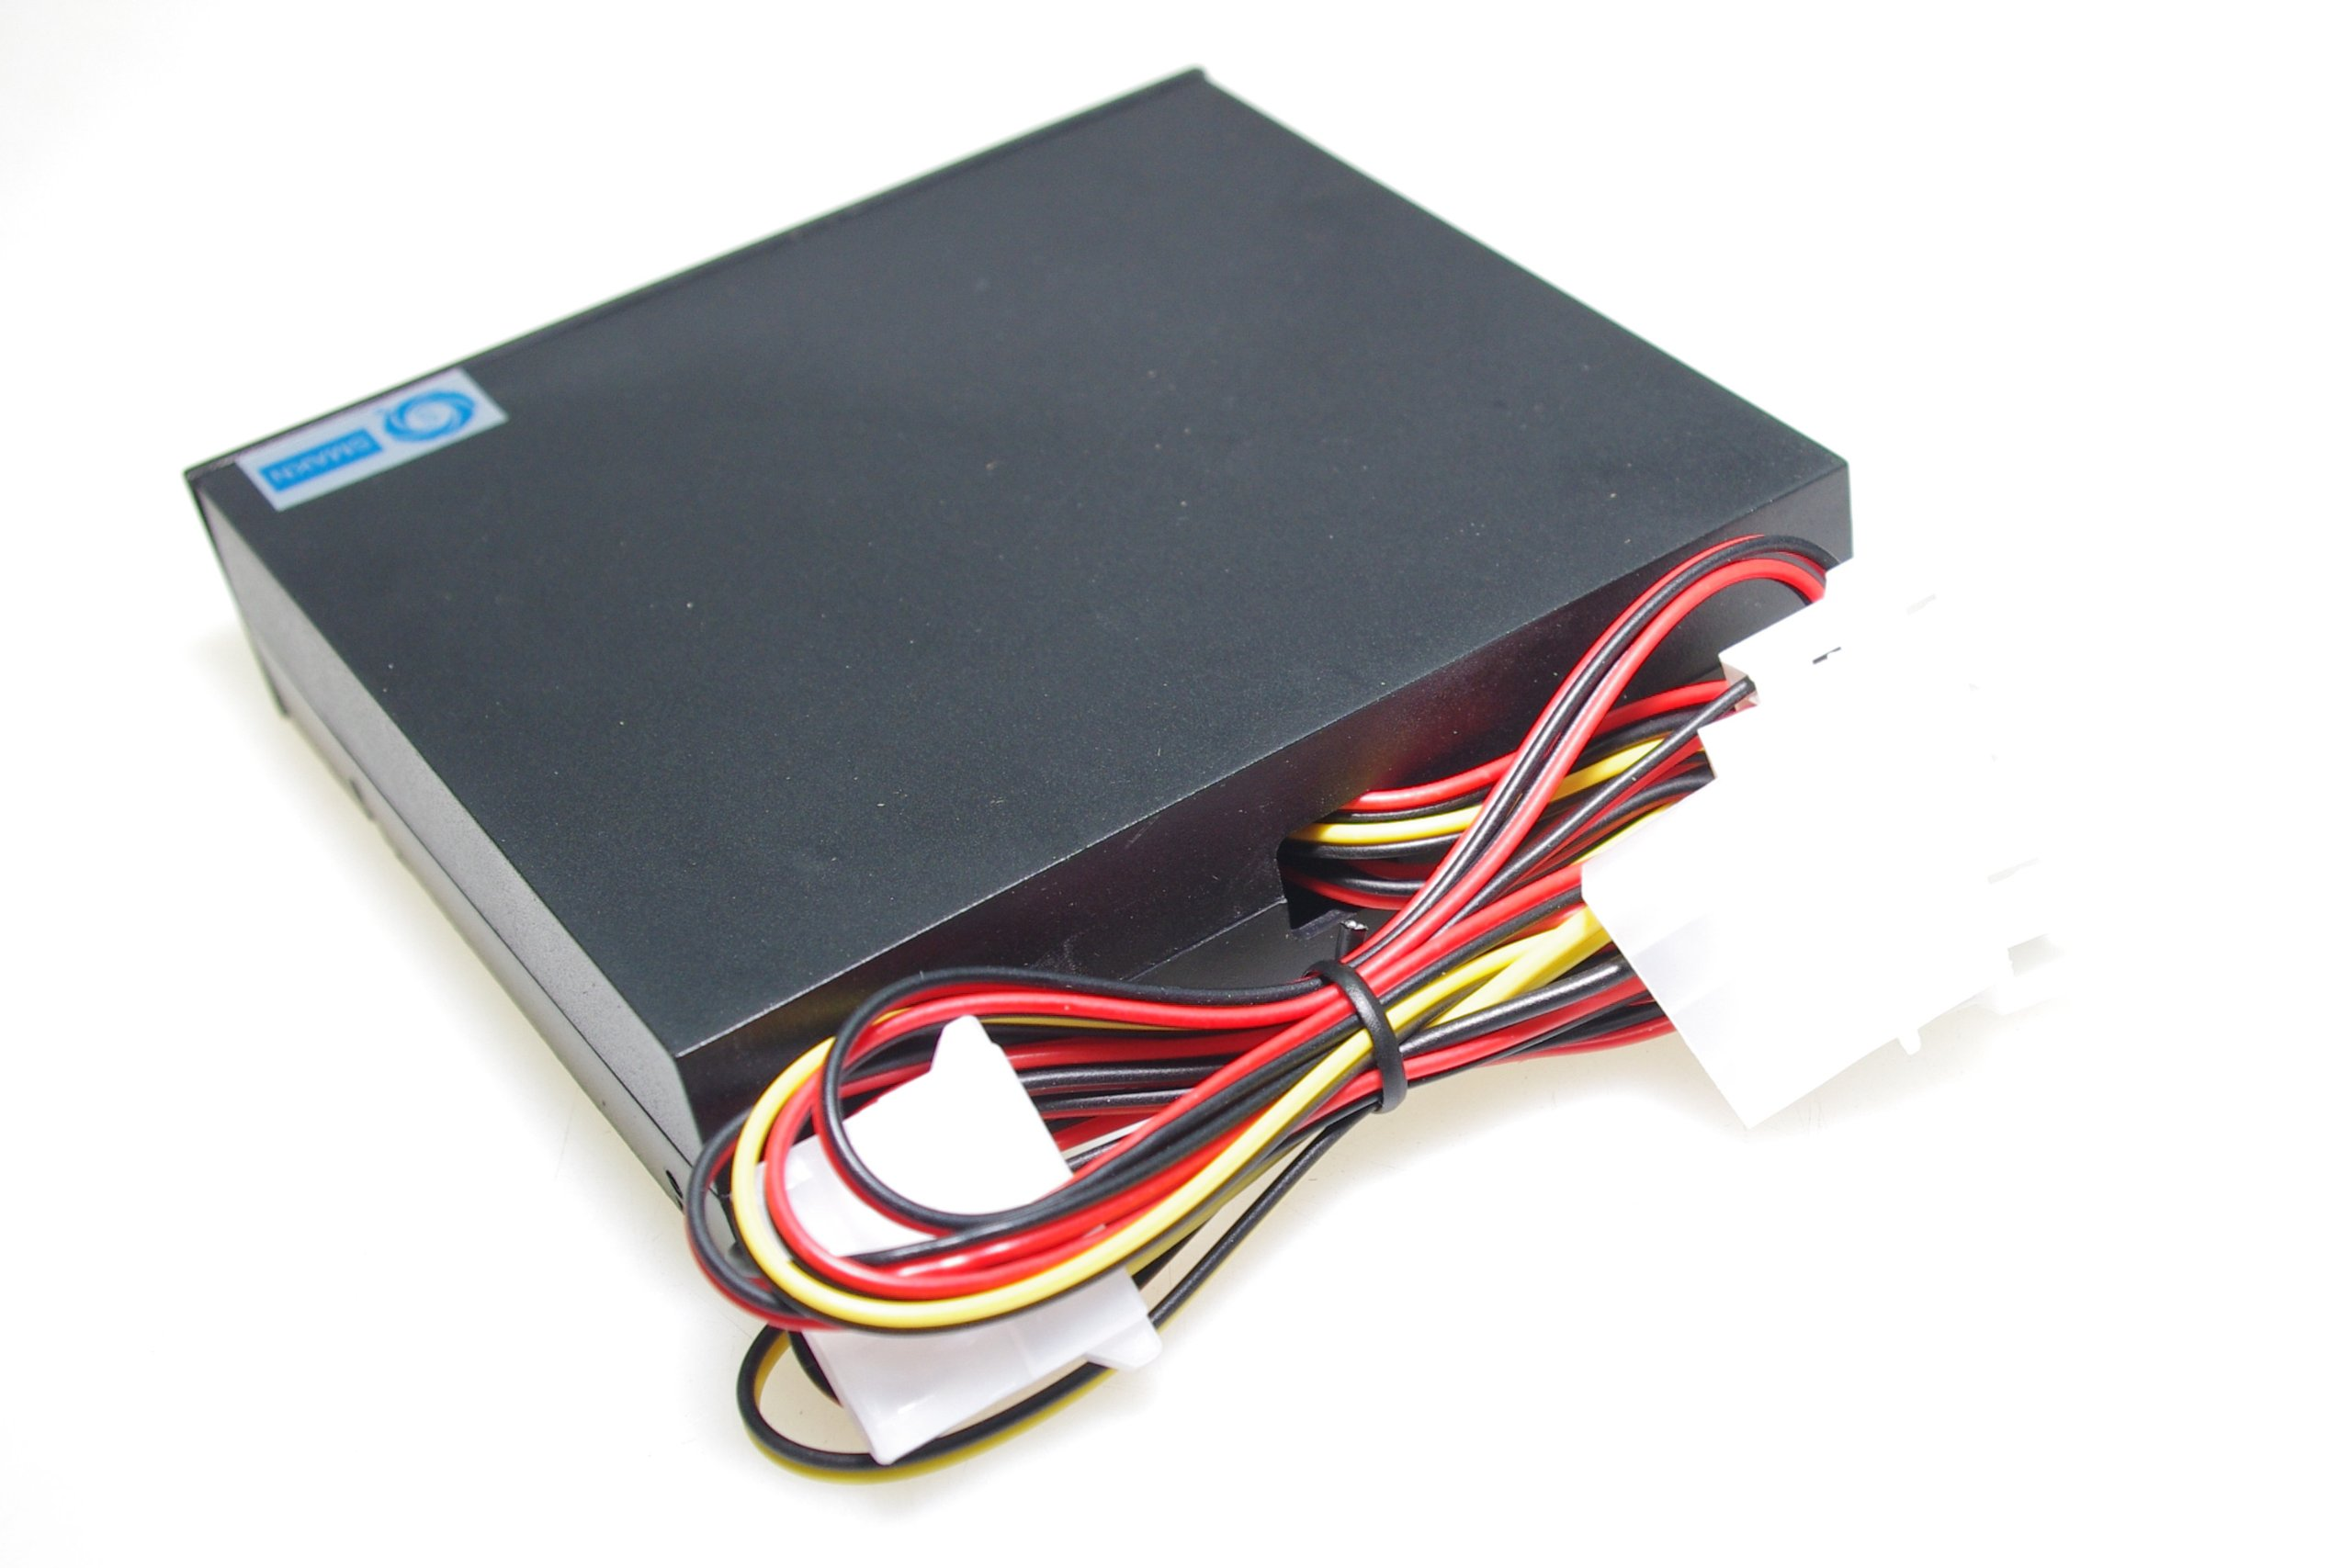 SMAKN® 3.5'' Pc Cpu Hdd 4 Channel Fan Speed Controller Control Led Cooling Front Panel by SMAKN (Image #2)